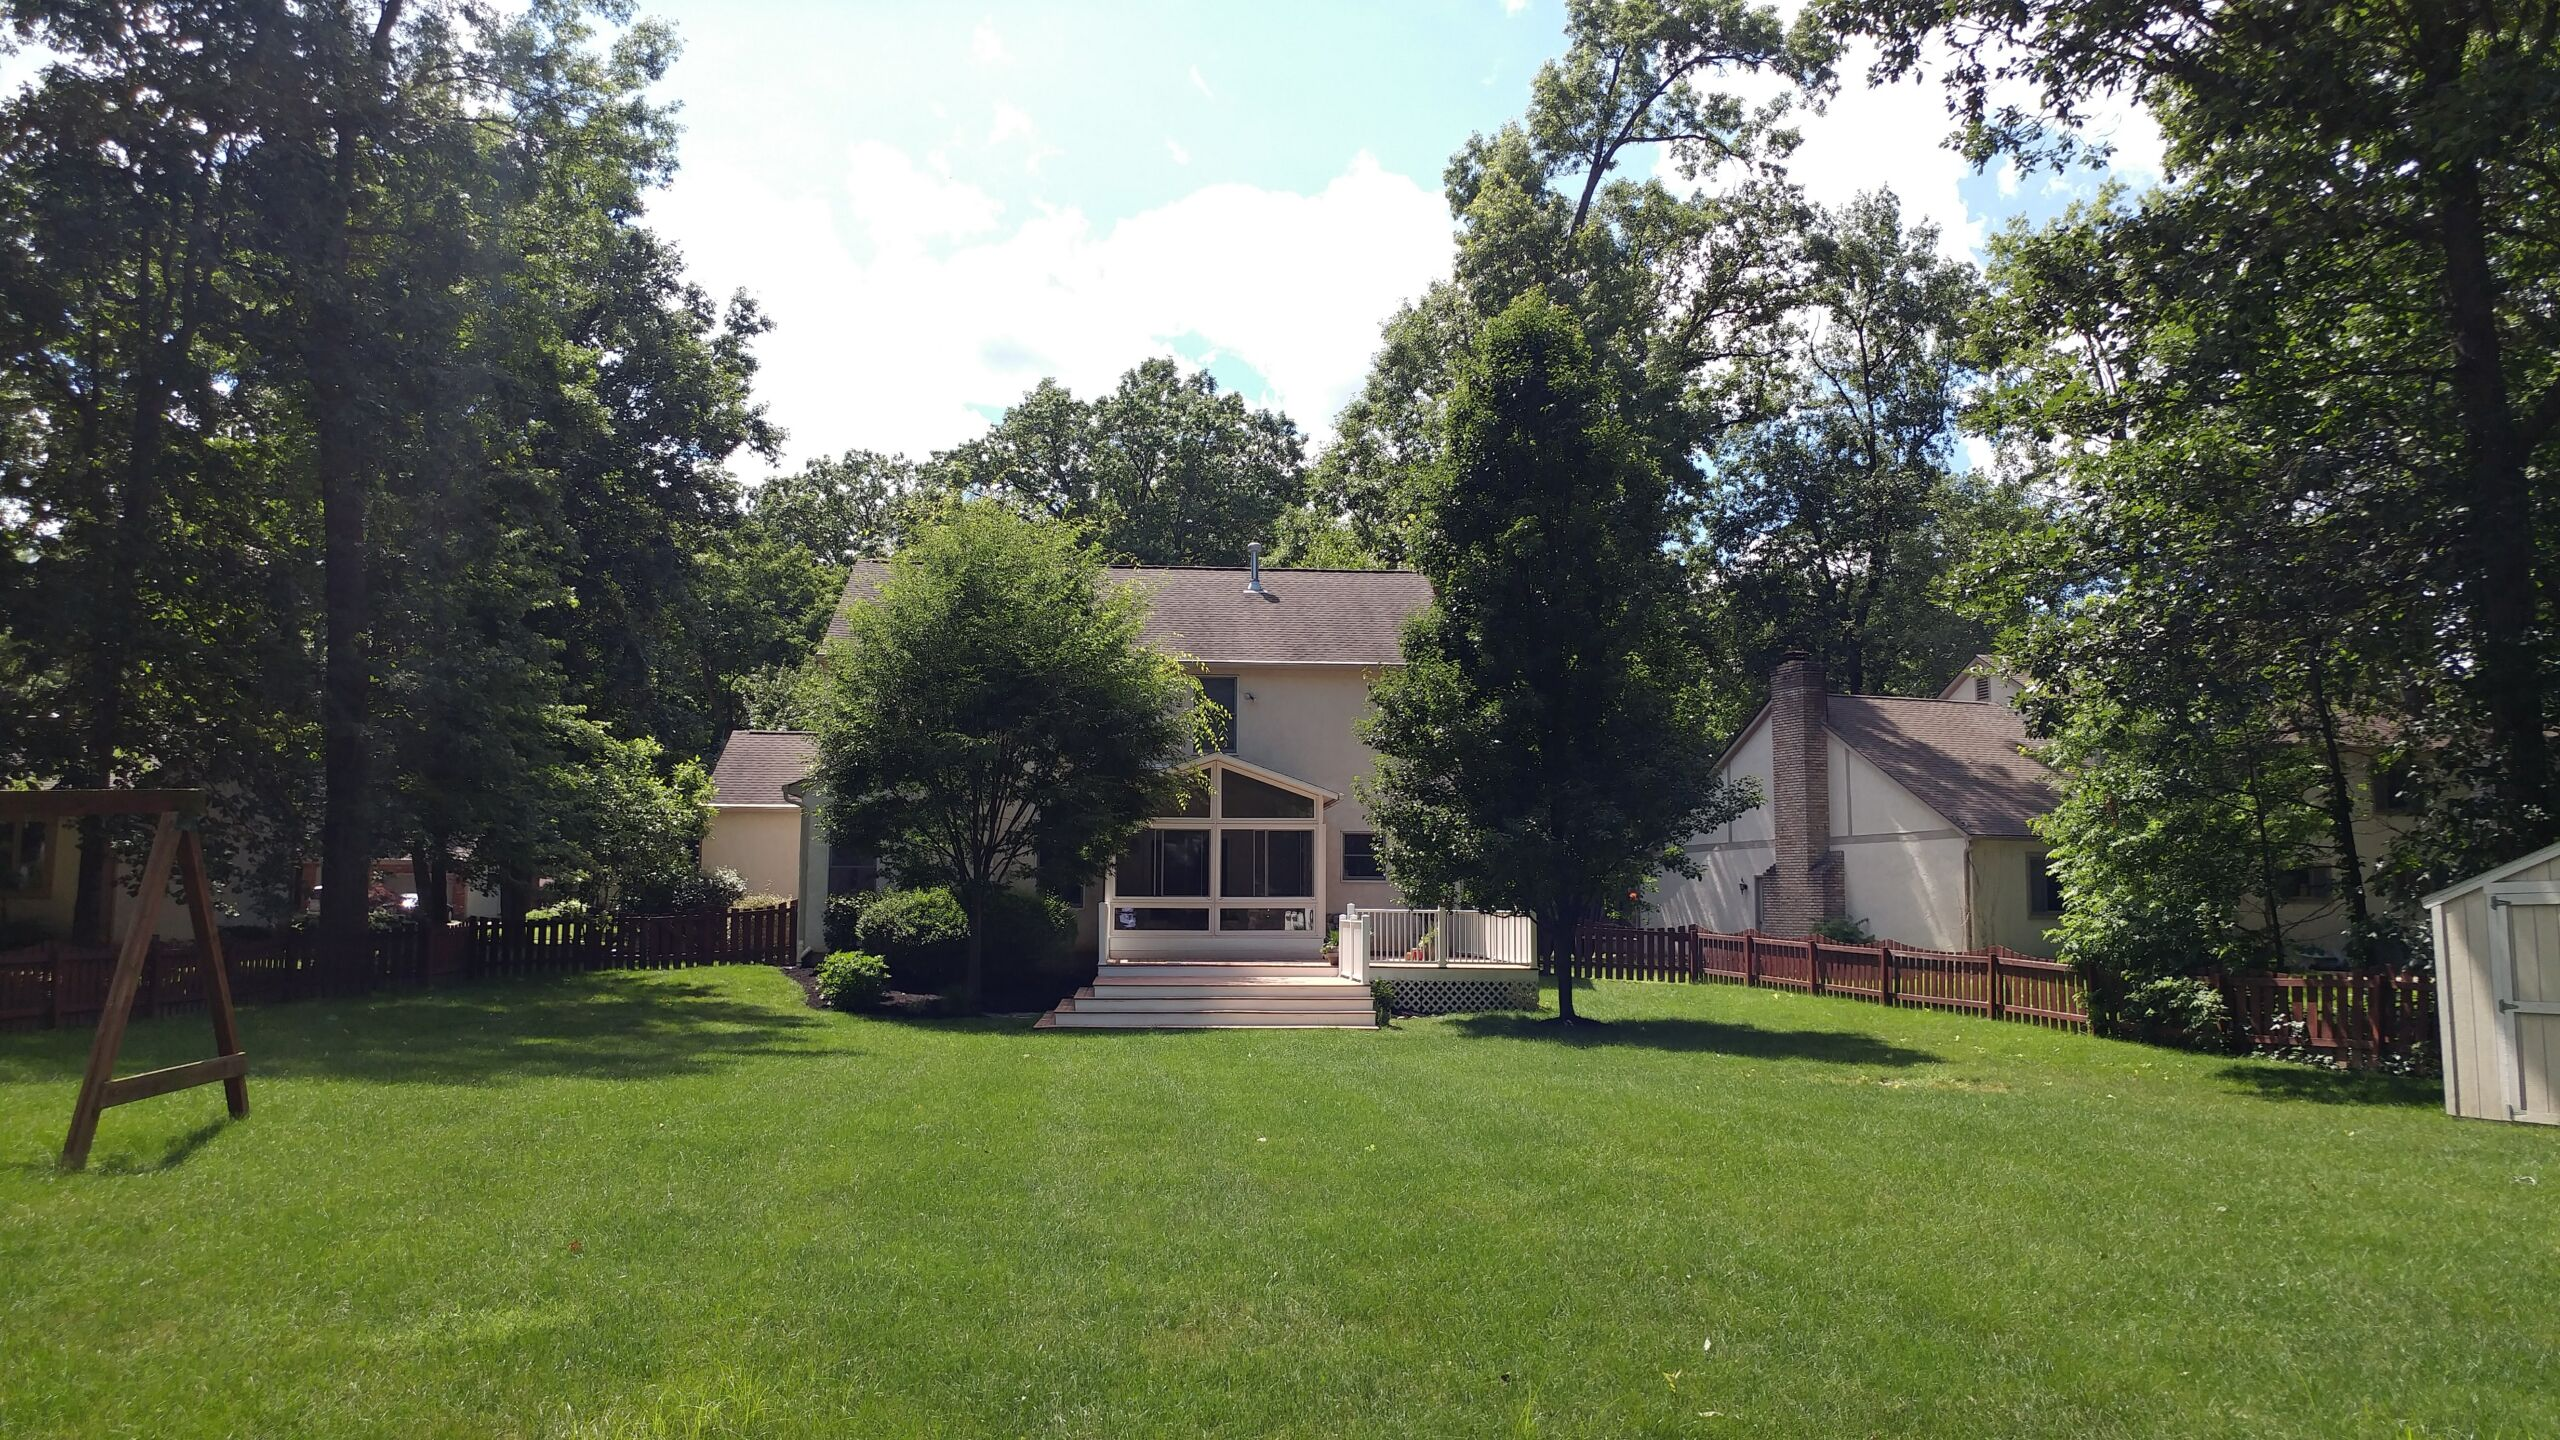 Luxurious Westerville 5-bedroom, 3.5 bath home on 1/2-acre lot with mature trees